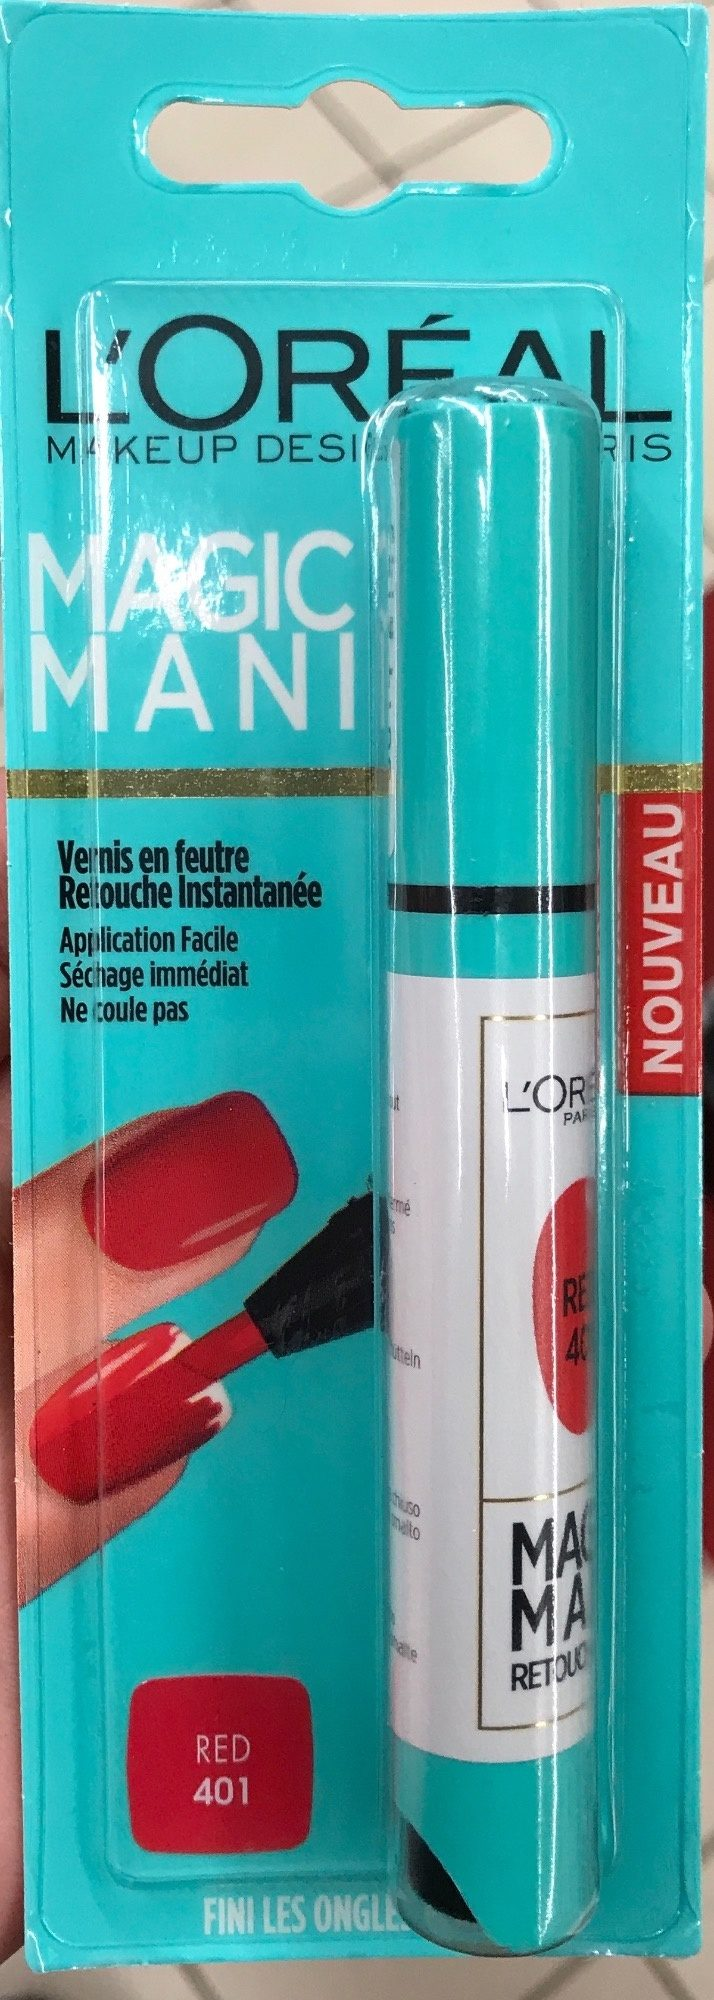 Magic Mani Vernis en feutre Red 401 - Product